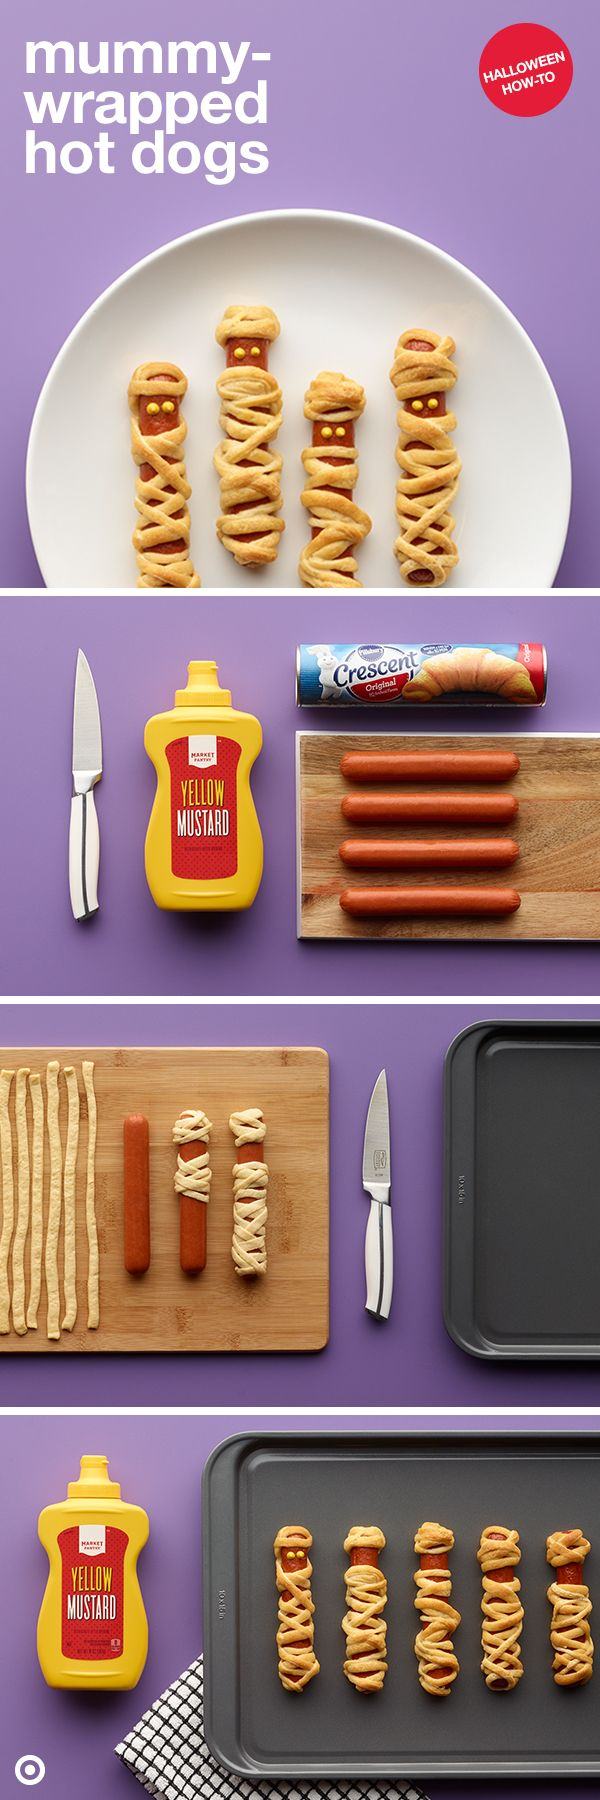 Same dog, new tricks. Preserve your Halloween snack-savvy status with this mummy-wrapped hot dog idea. Things you'll need: the dogs, crescent rolls and mustard. Roll, slice, bake, dot and you're done. It's great as a party app or main course for the kids' big trick-or-treating night.